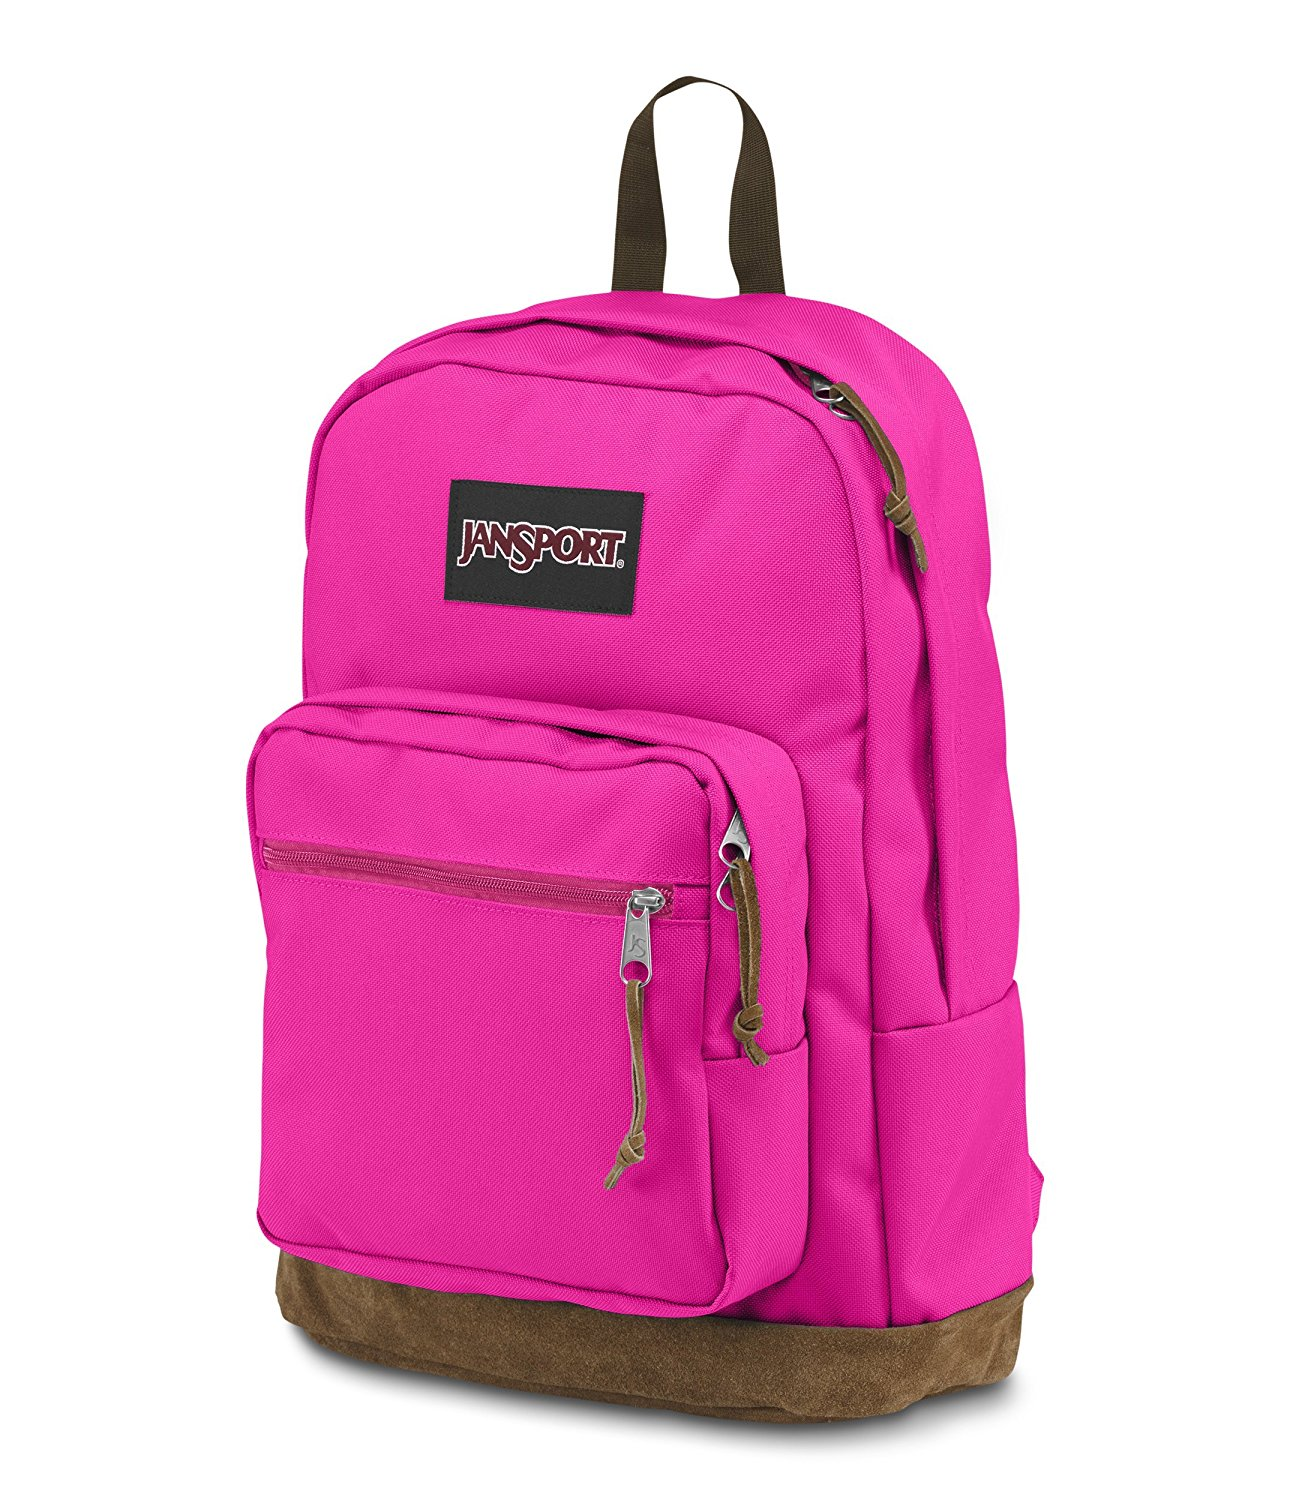 Best Toddler Backpack Reviews of 2018 at TopProducts.com